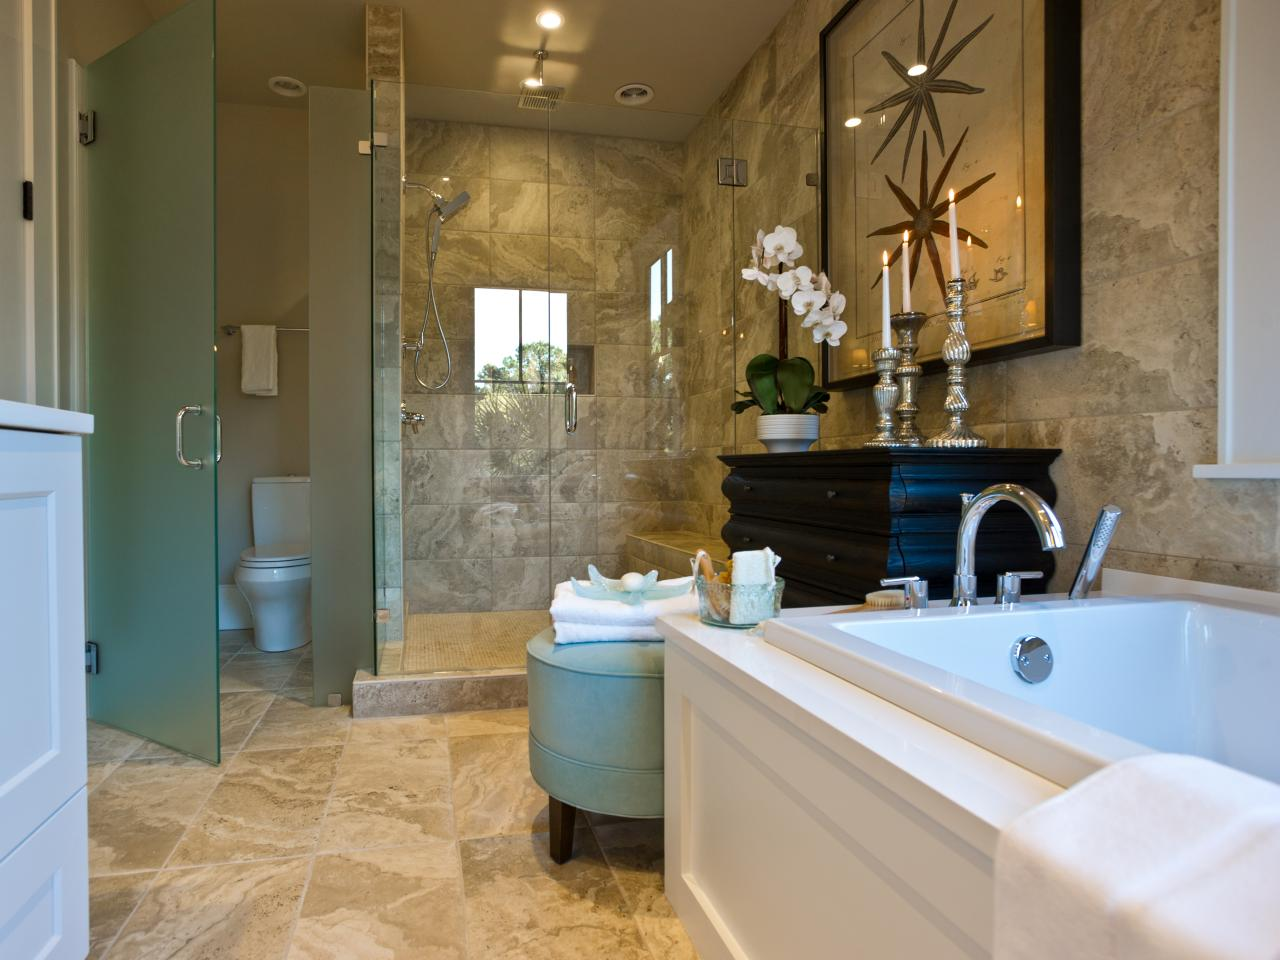 Hgtv dream home 2013 master bathroom pictures and video for Master bathroom decorating ideas